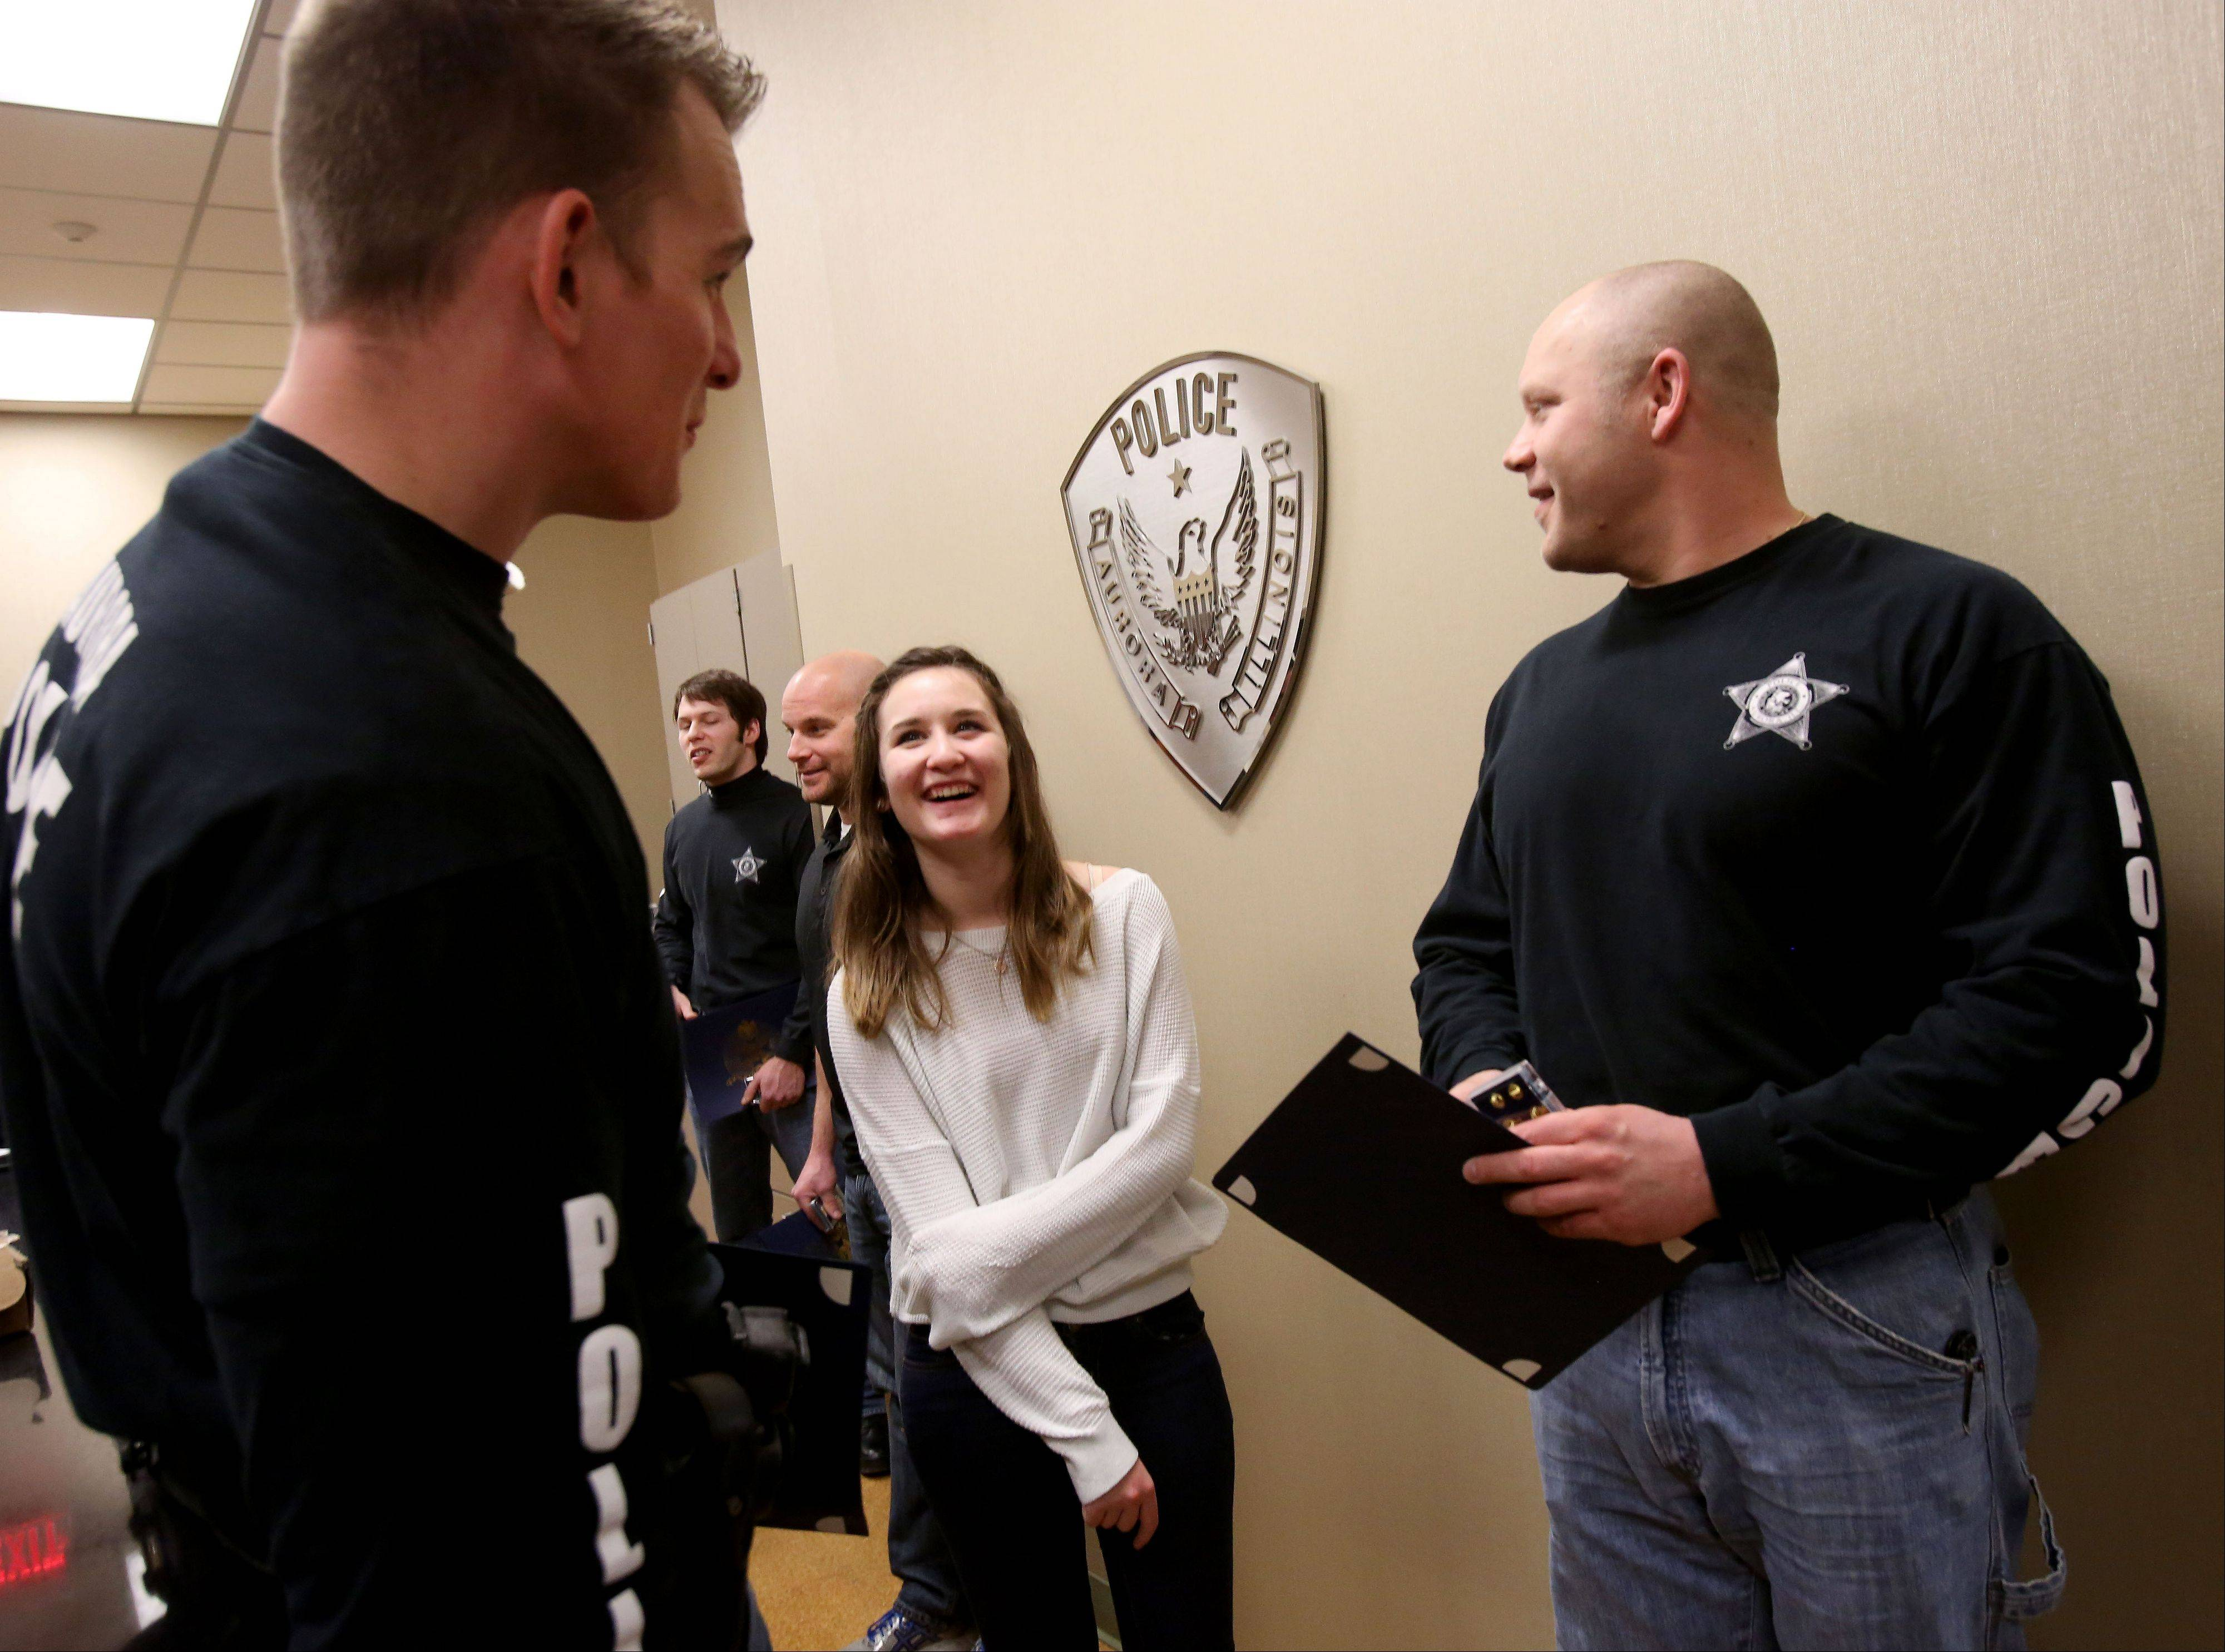 Annie Prosser, 15, chats with officers Edwin Doepel, left, and W. Joshua Sullivan.